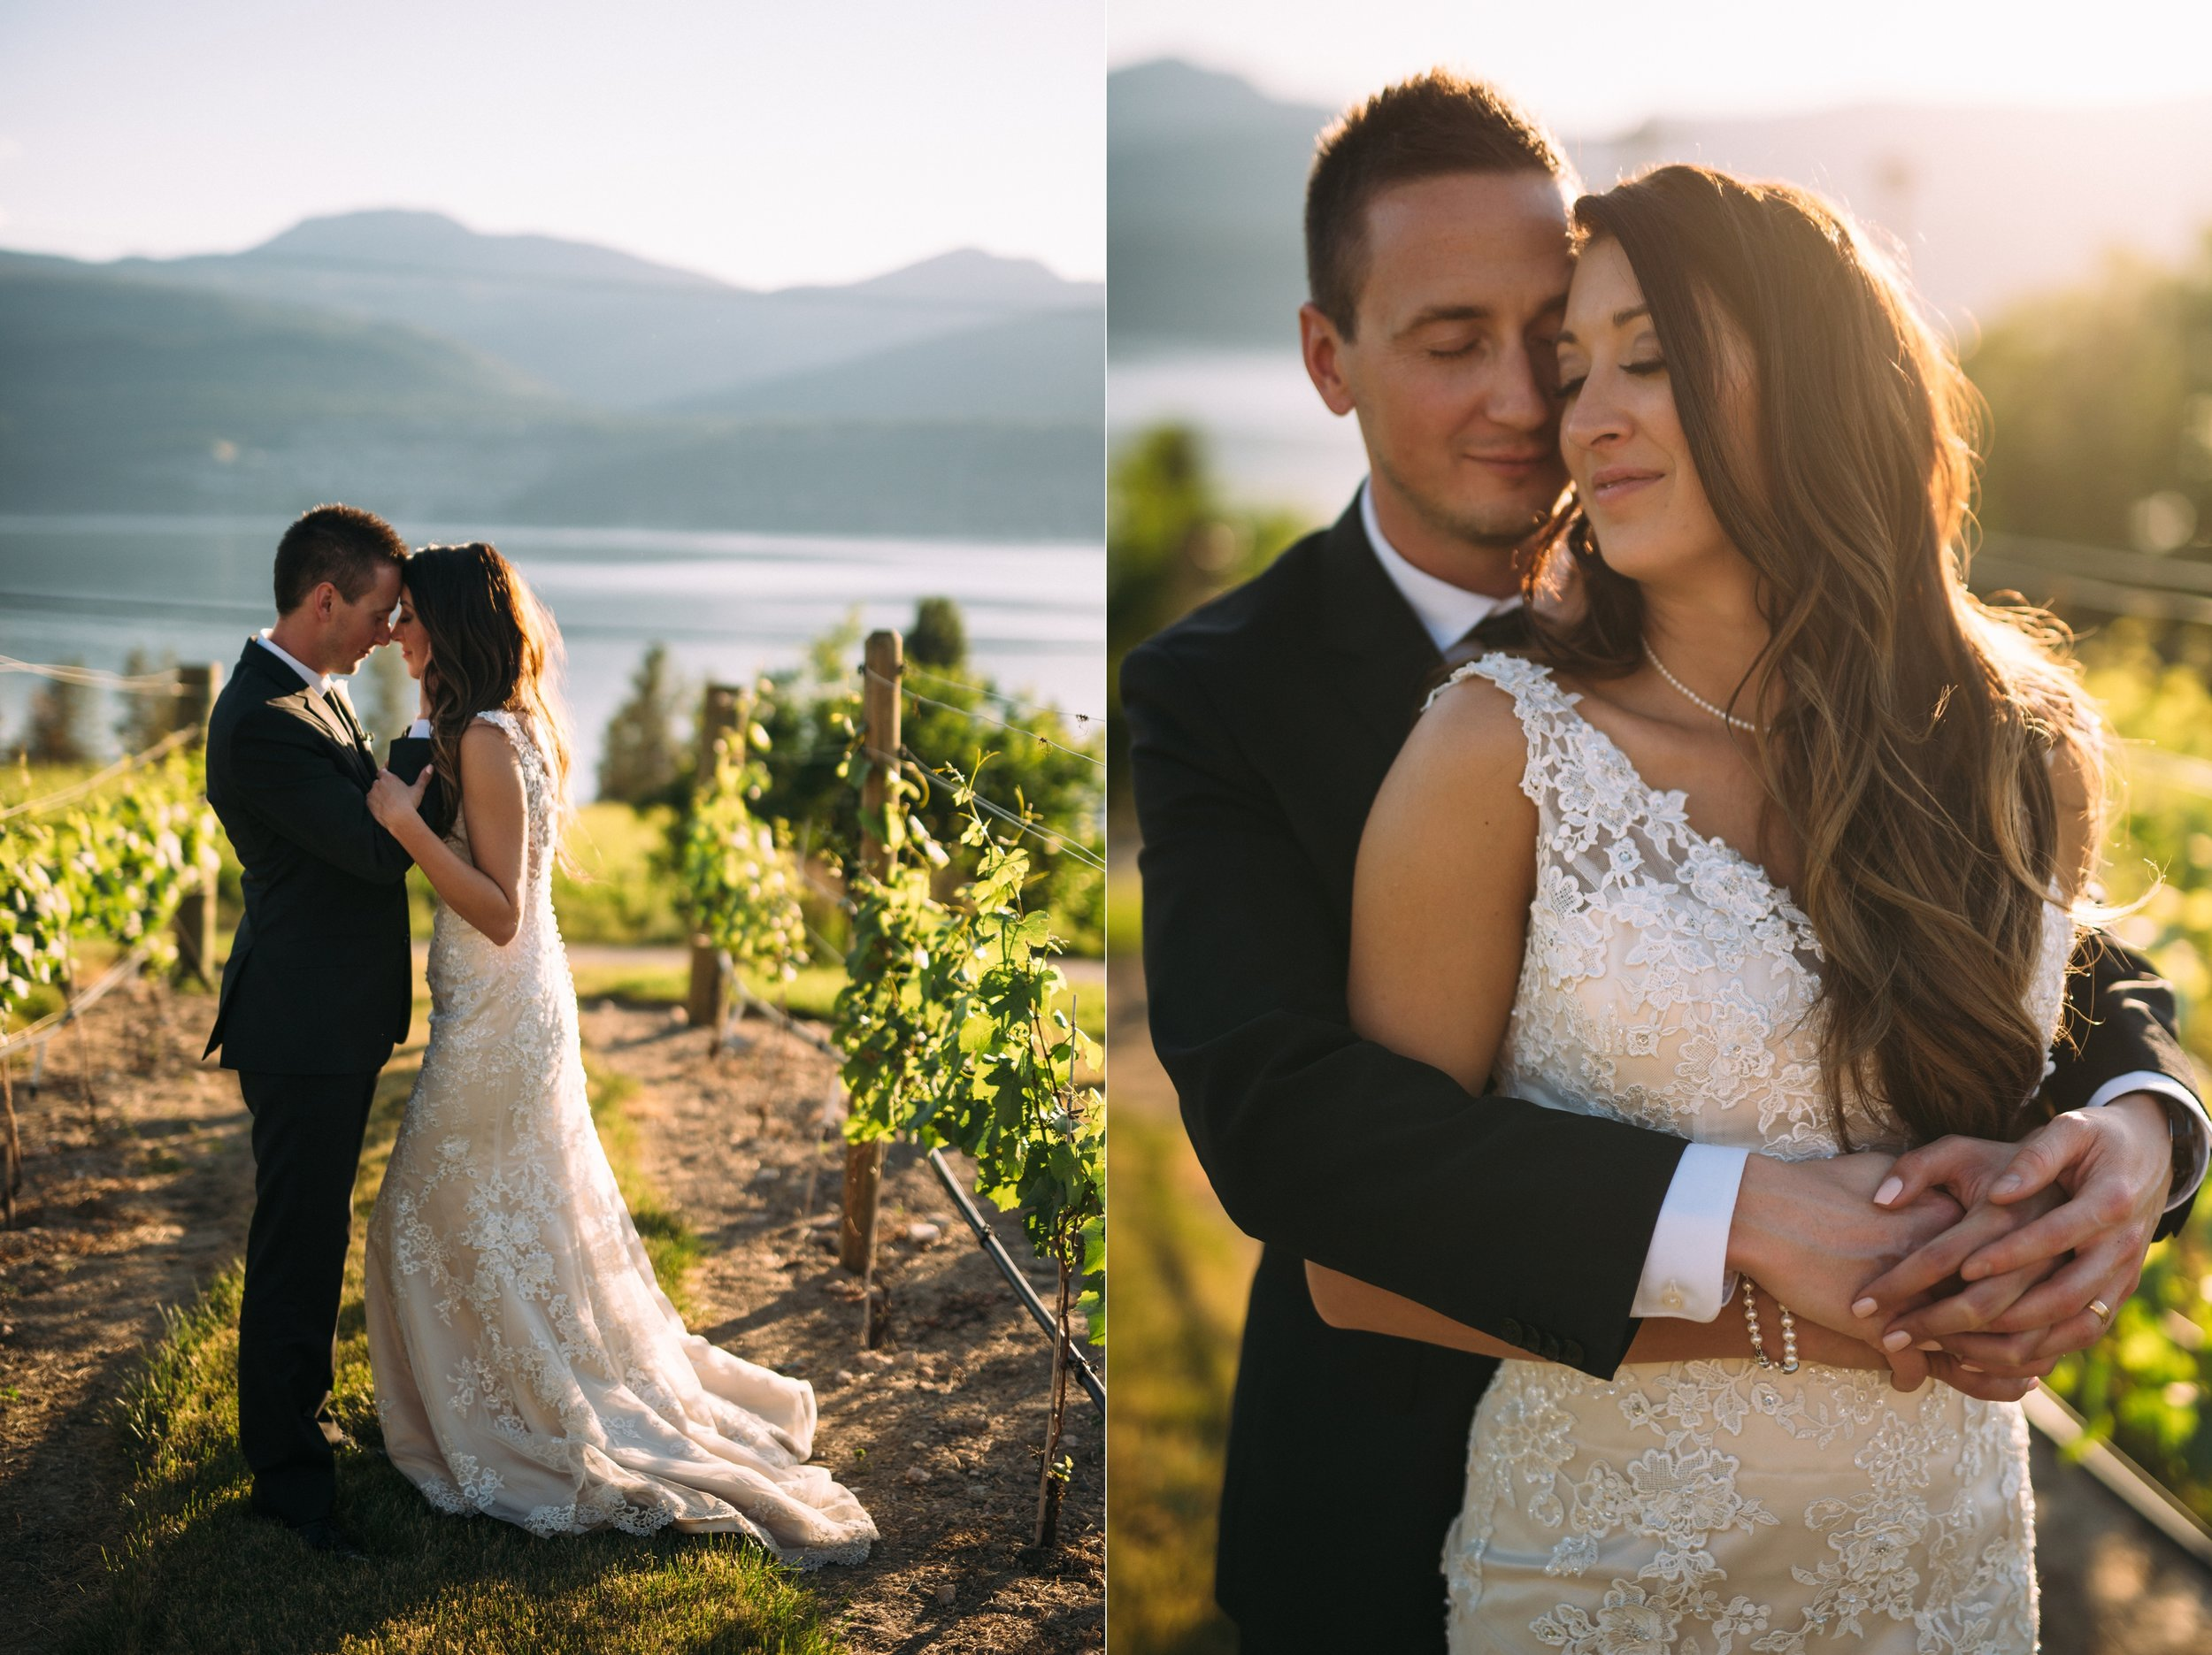 kaihla_tonai_intimate_wedding_elopement_photographer_3925